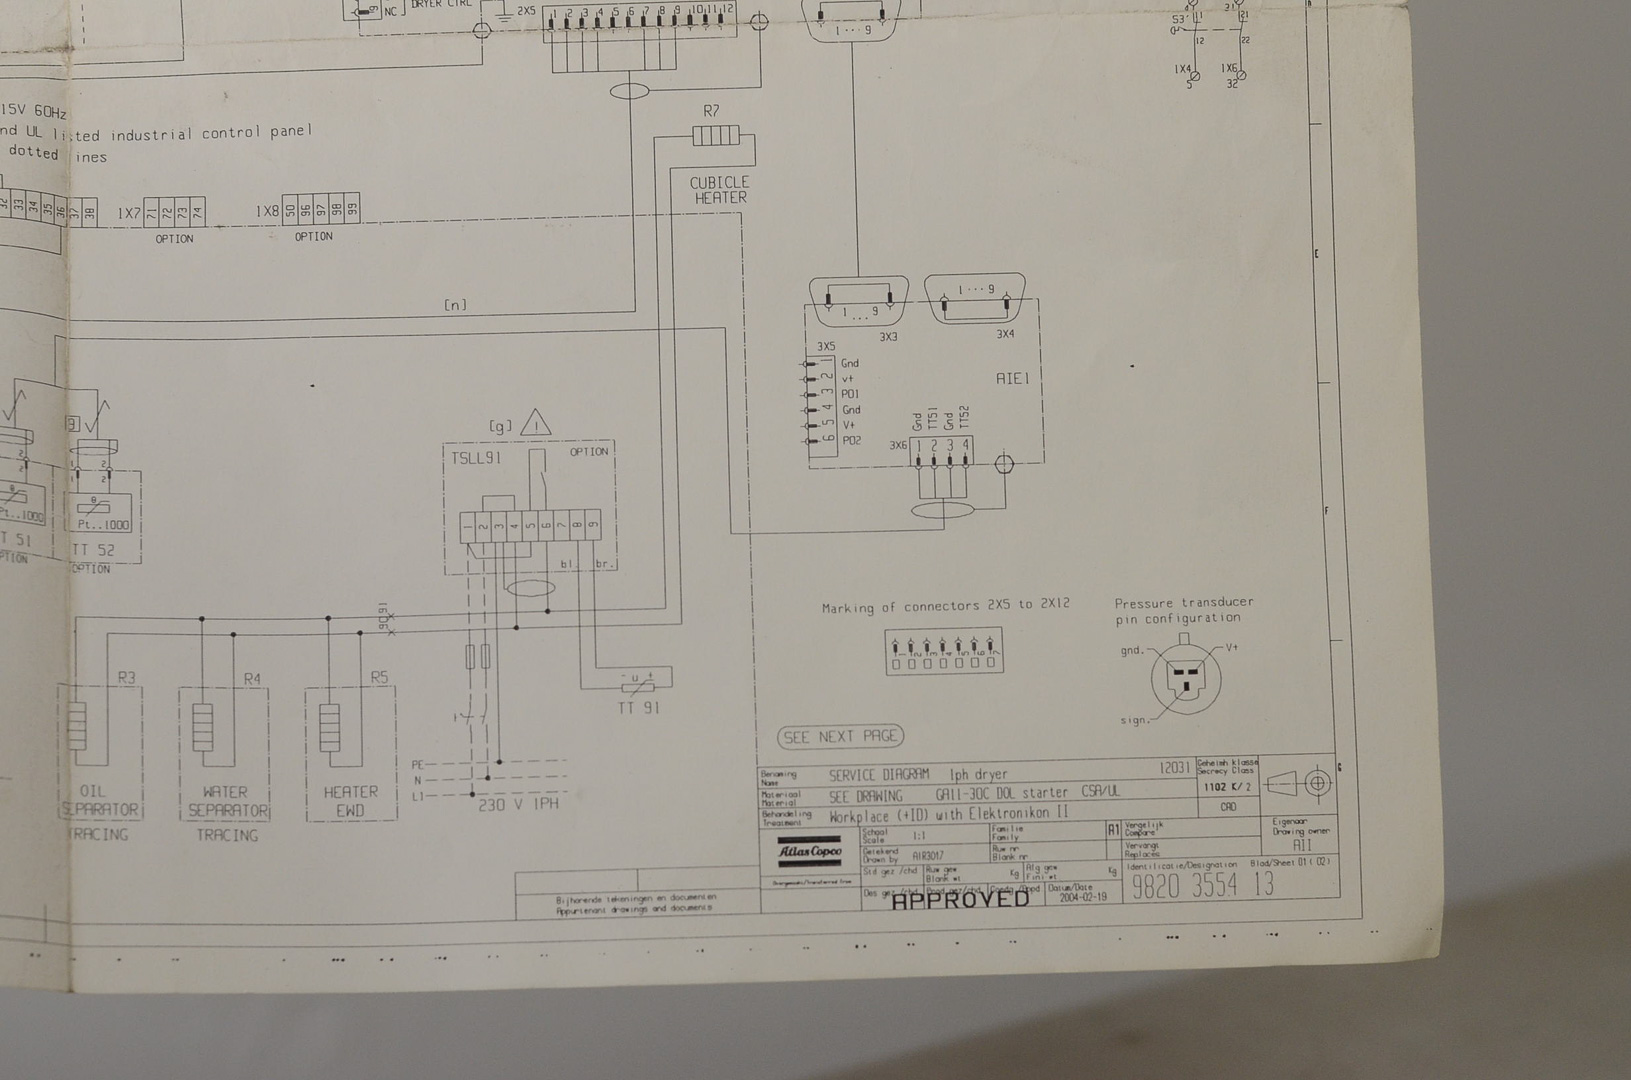 Atlas Copco Compressor Wiring Diagram. atlas copco gx5 wiring diagram. atlas  copco compressor wiring diagram decor. atlas copco ga18 25hp rotary screw  compressor steep hill. atlas copco rock drills roc l8 drill.A.2002-acura-tl-radio.info. All Rights Reserved.